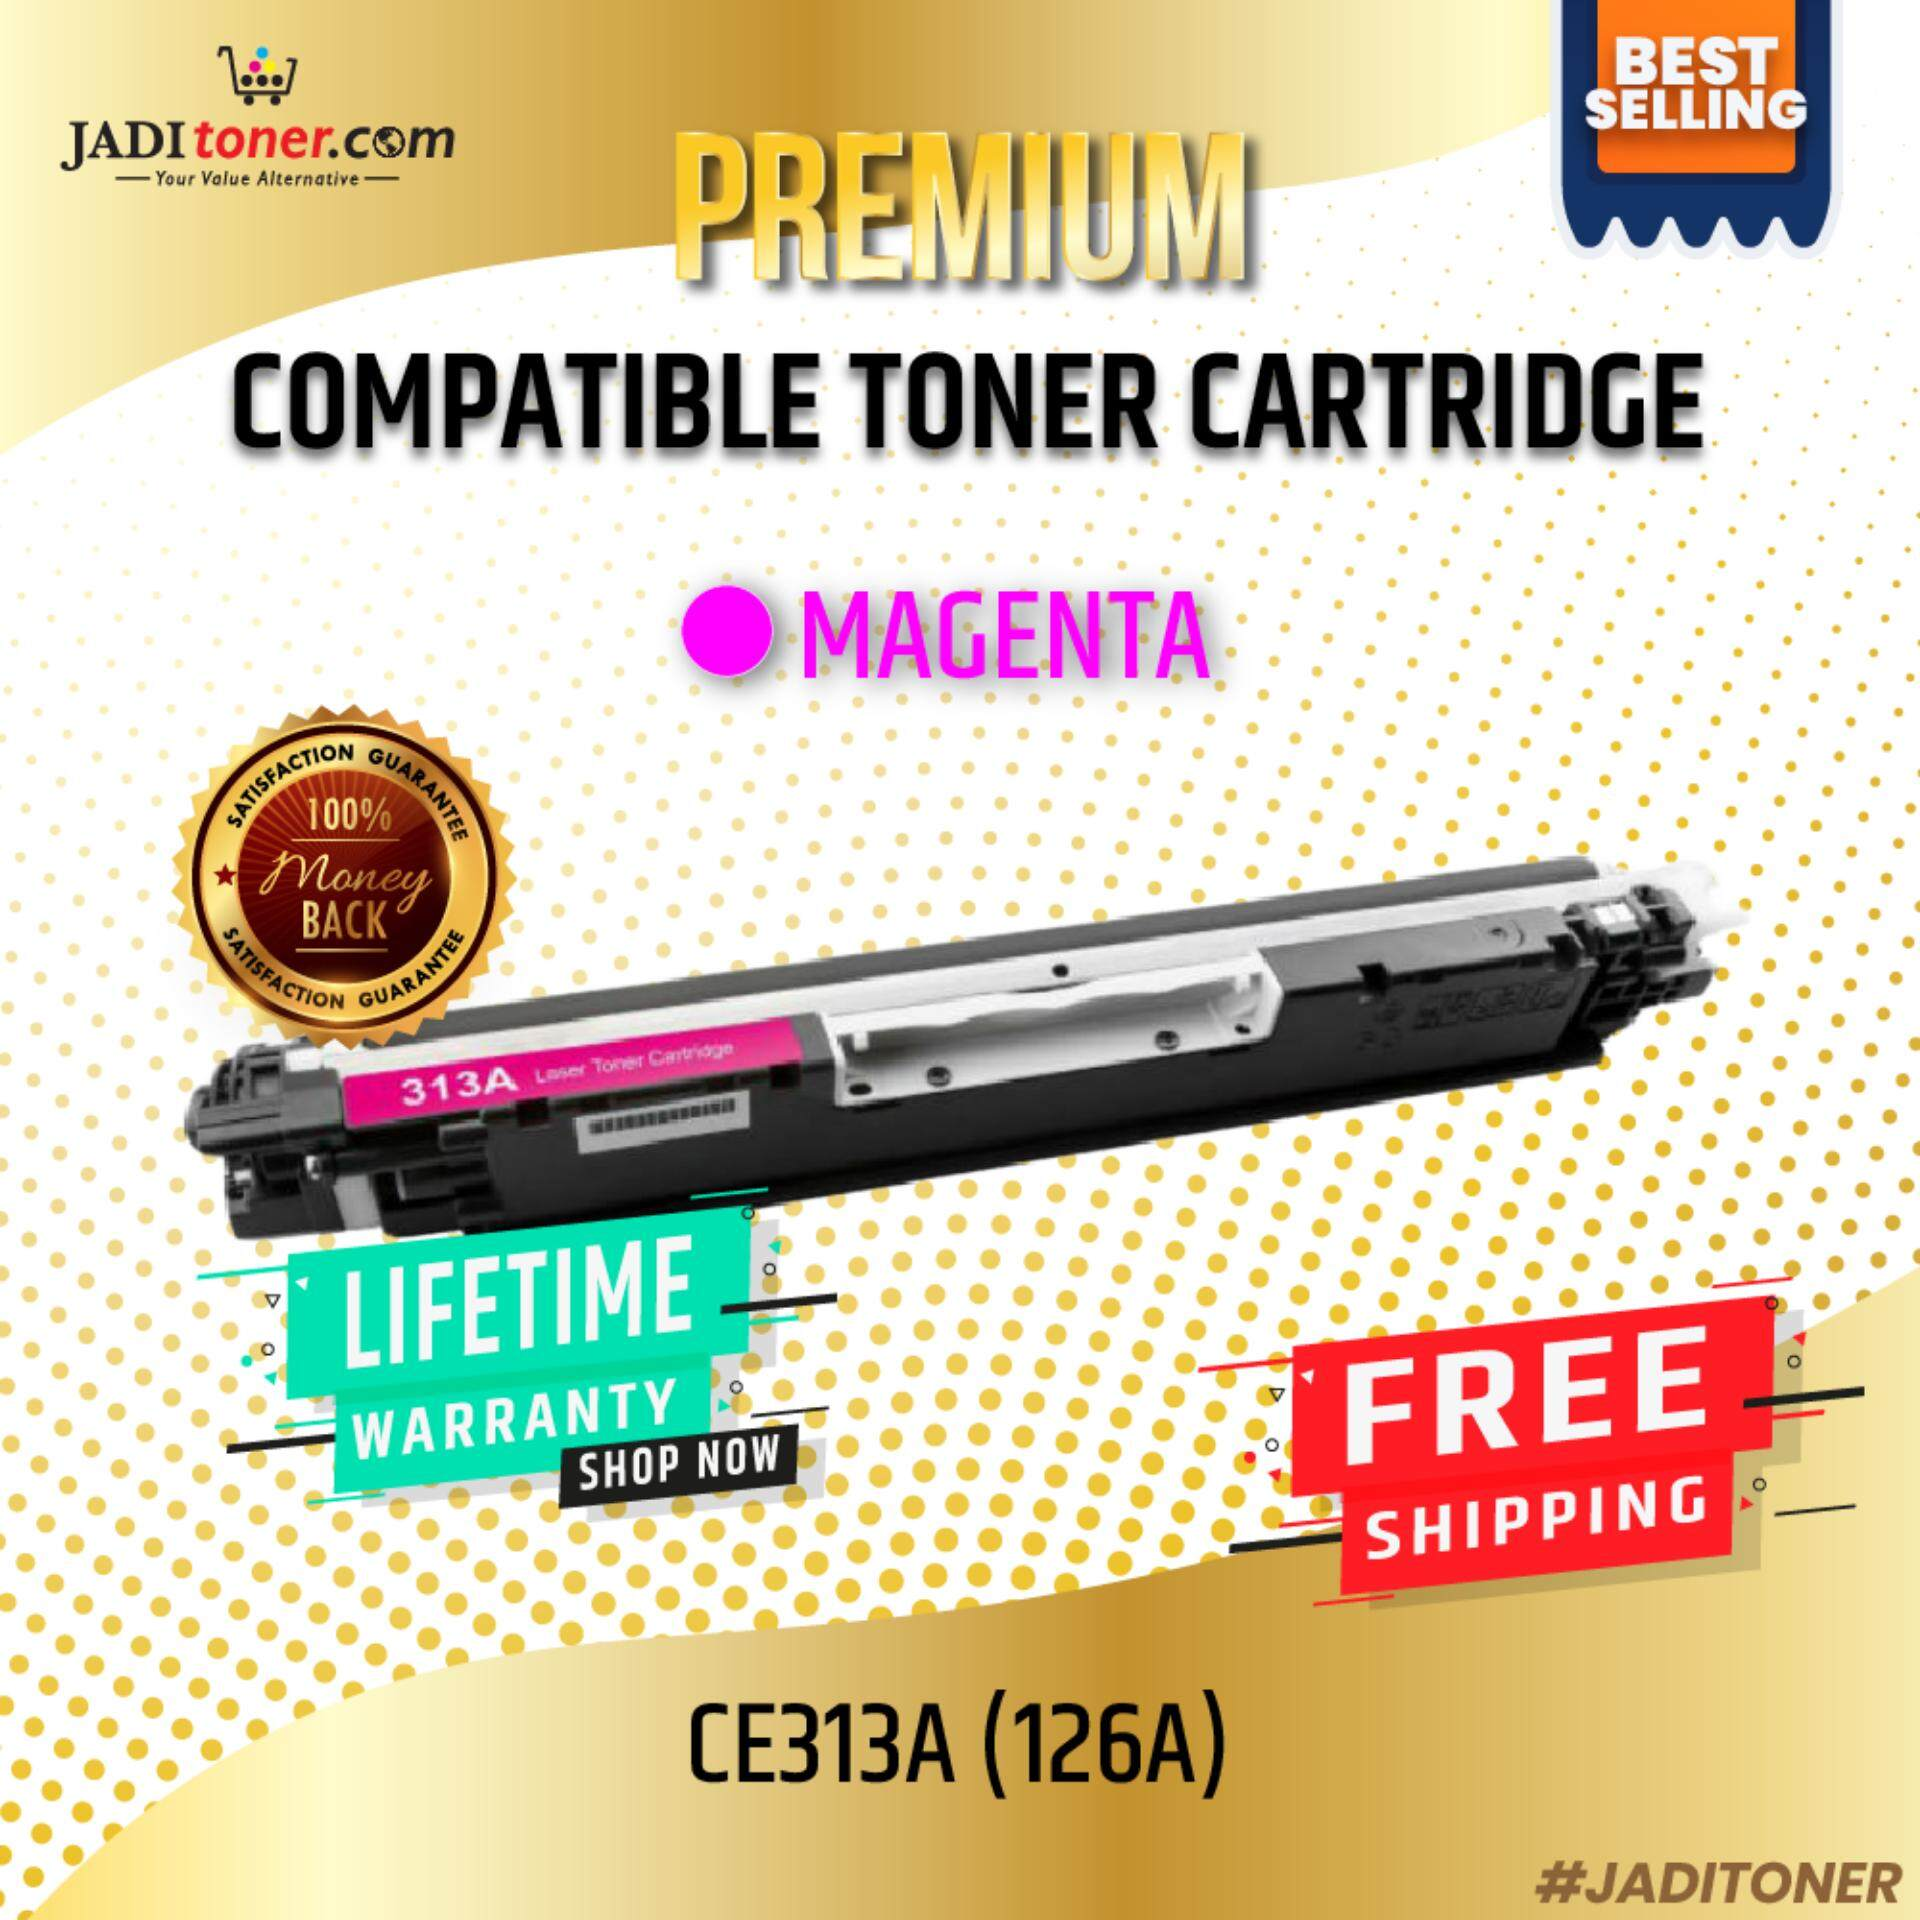 Compatible CE313A CE313 313A 126A Magenta Laser Toner Cartridge For Use In HP Laserjet Pro CP1021 / CP1025 / 200 color MFP M175